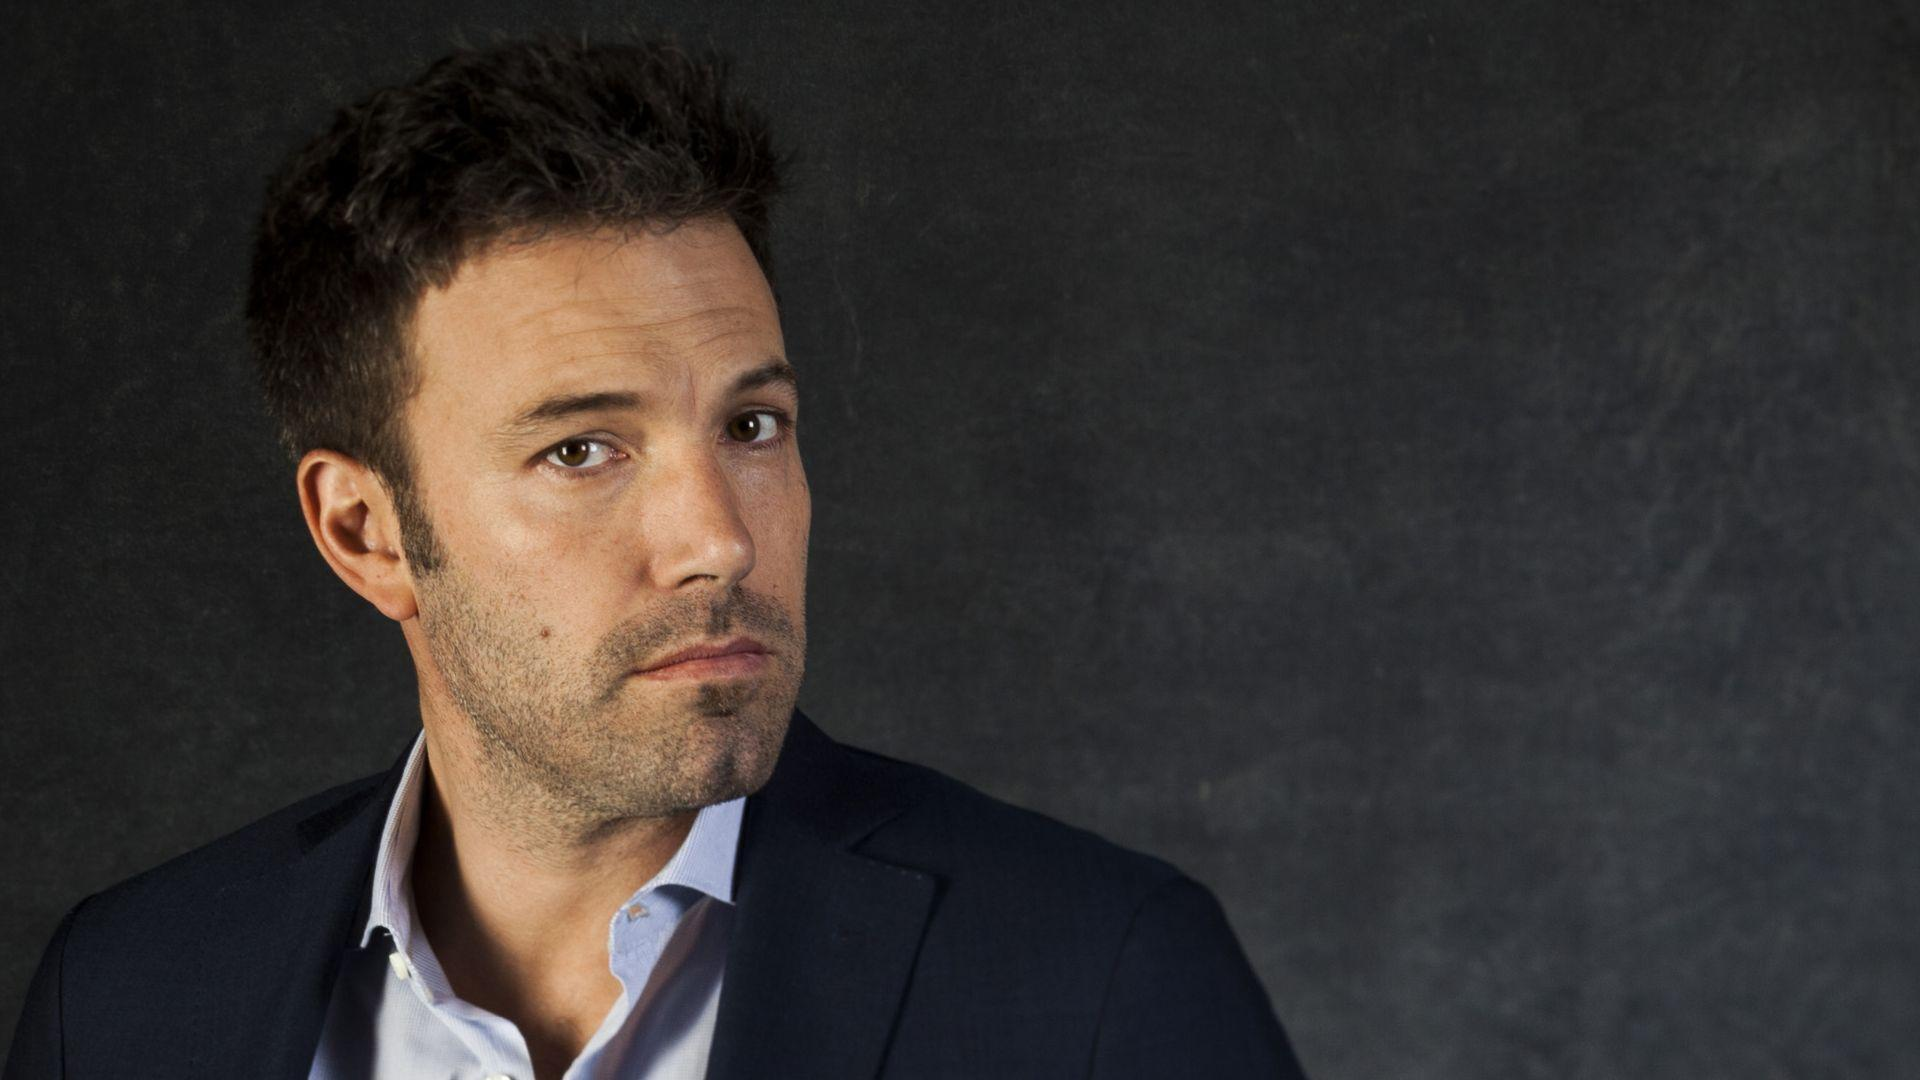 Ben Affleck Wallpapers HD Collection For Free Download